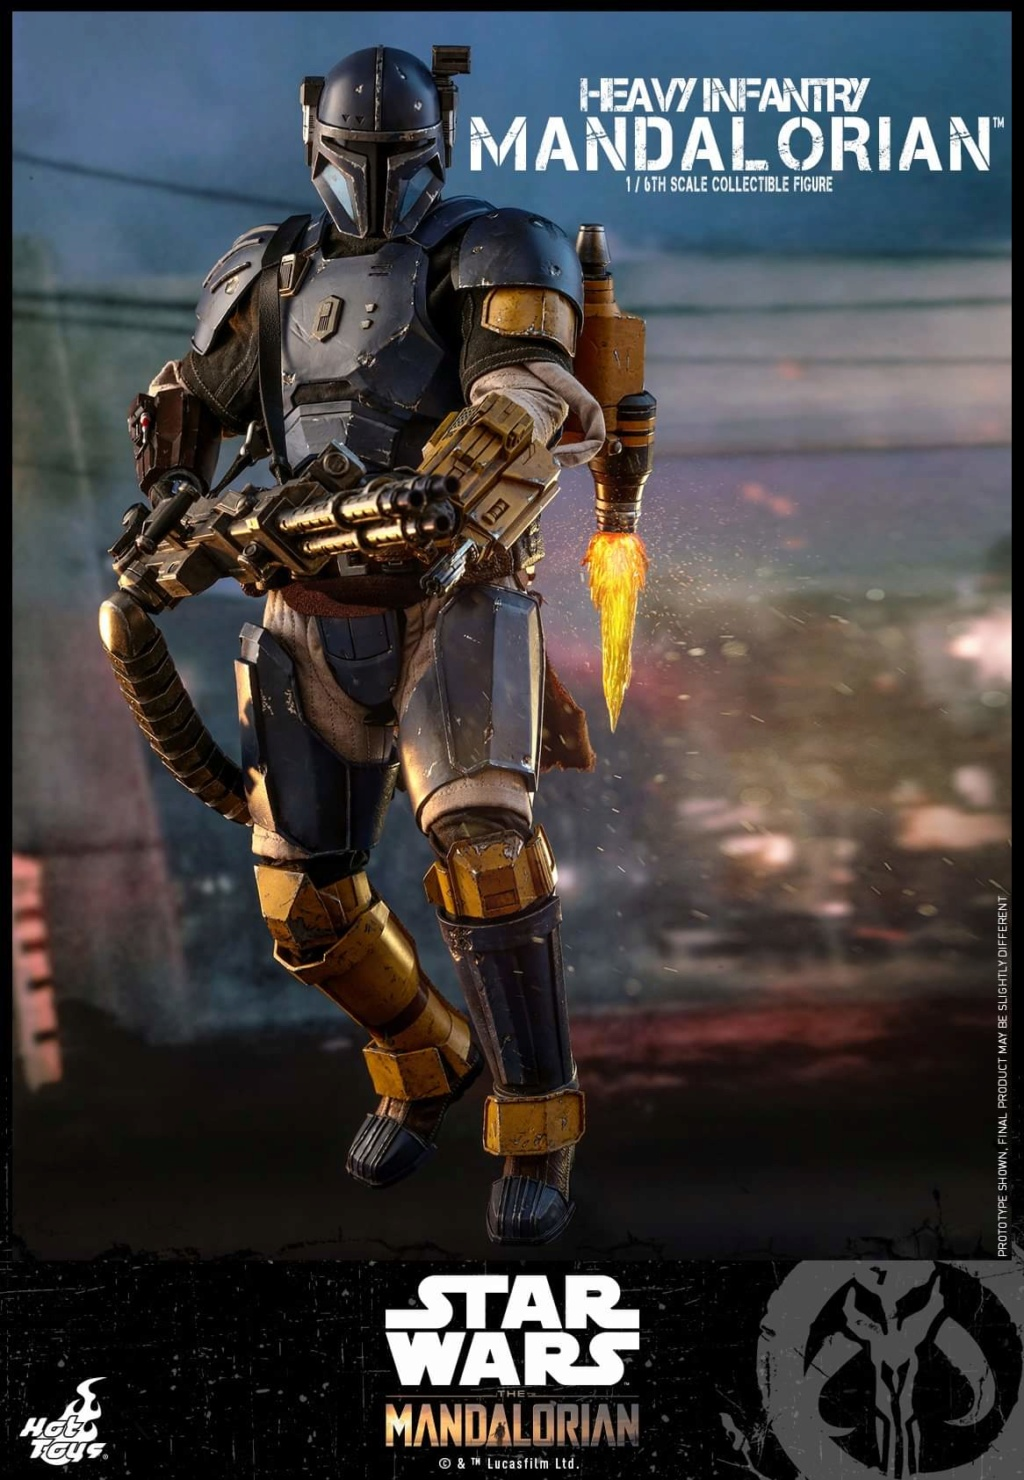 Heavy Infantry Mandalorian Collectible Figure 1/6th Hot Toy. Fb_img72